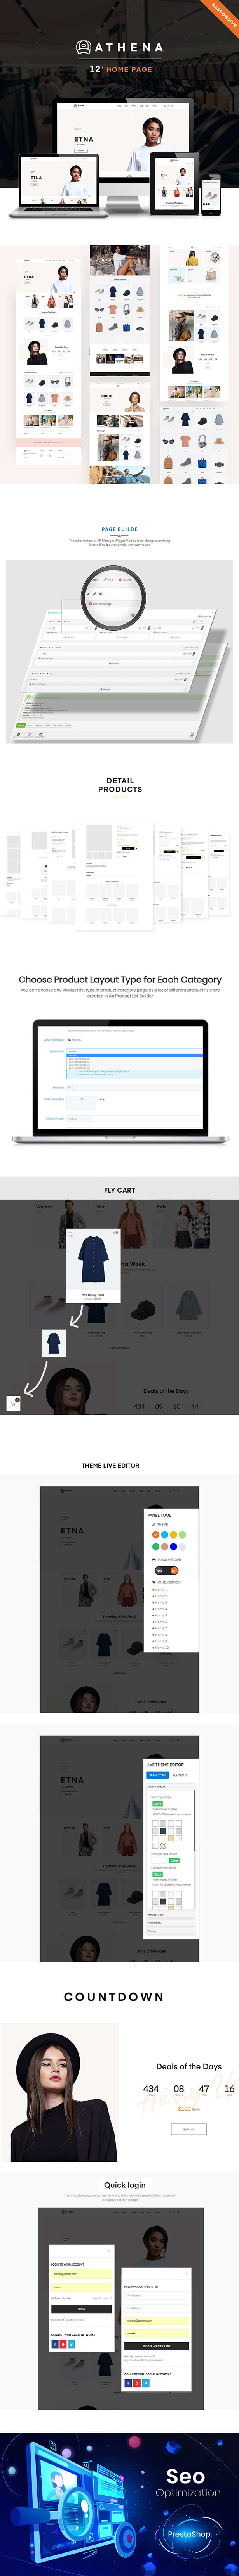 Athena-Fashion, Accessories prestashop 1.7 themes